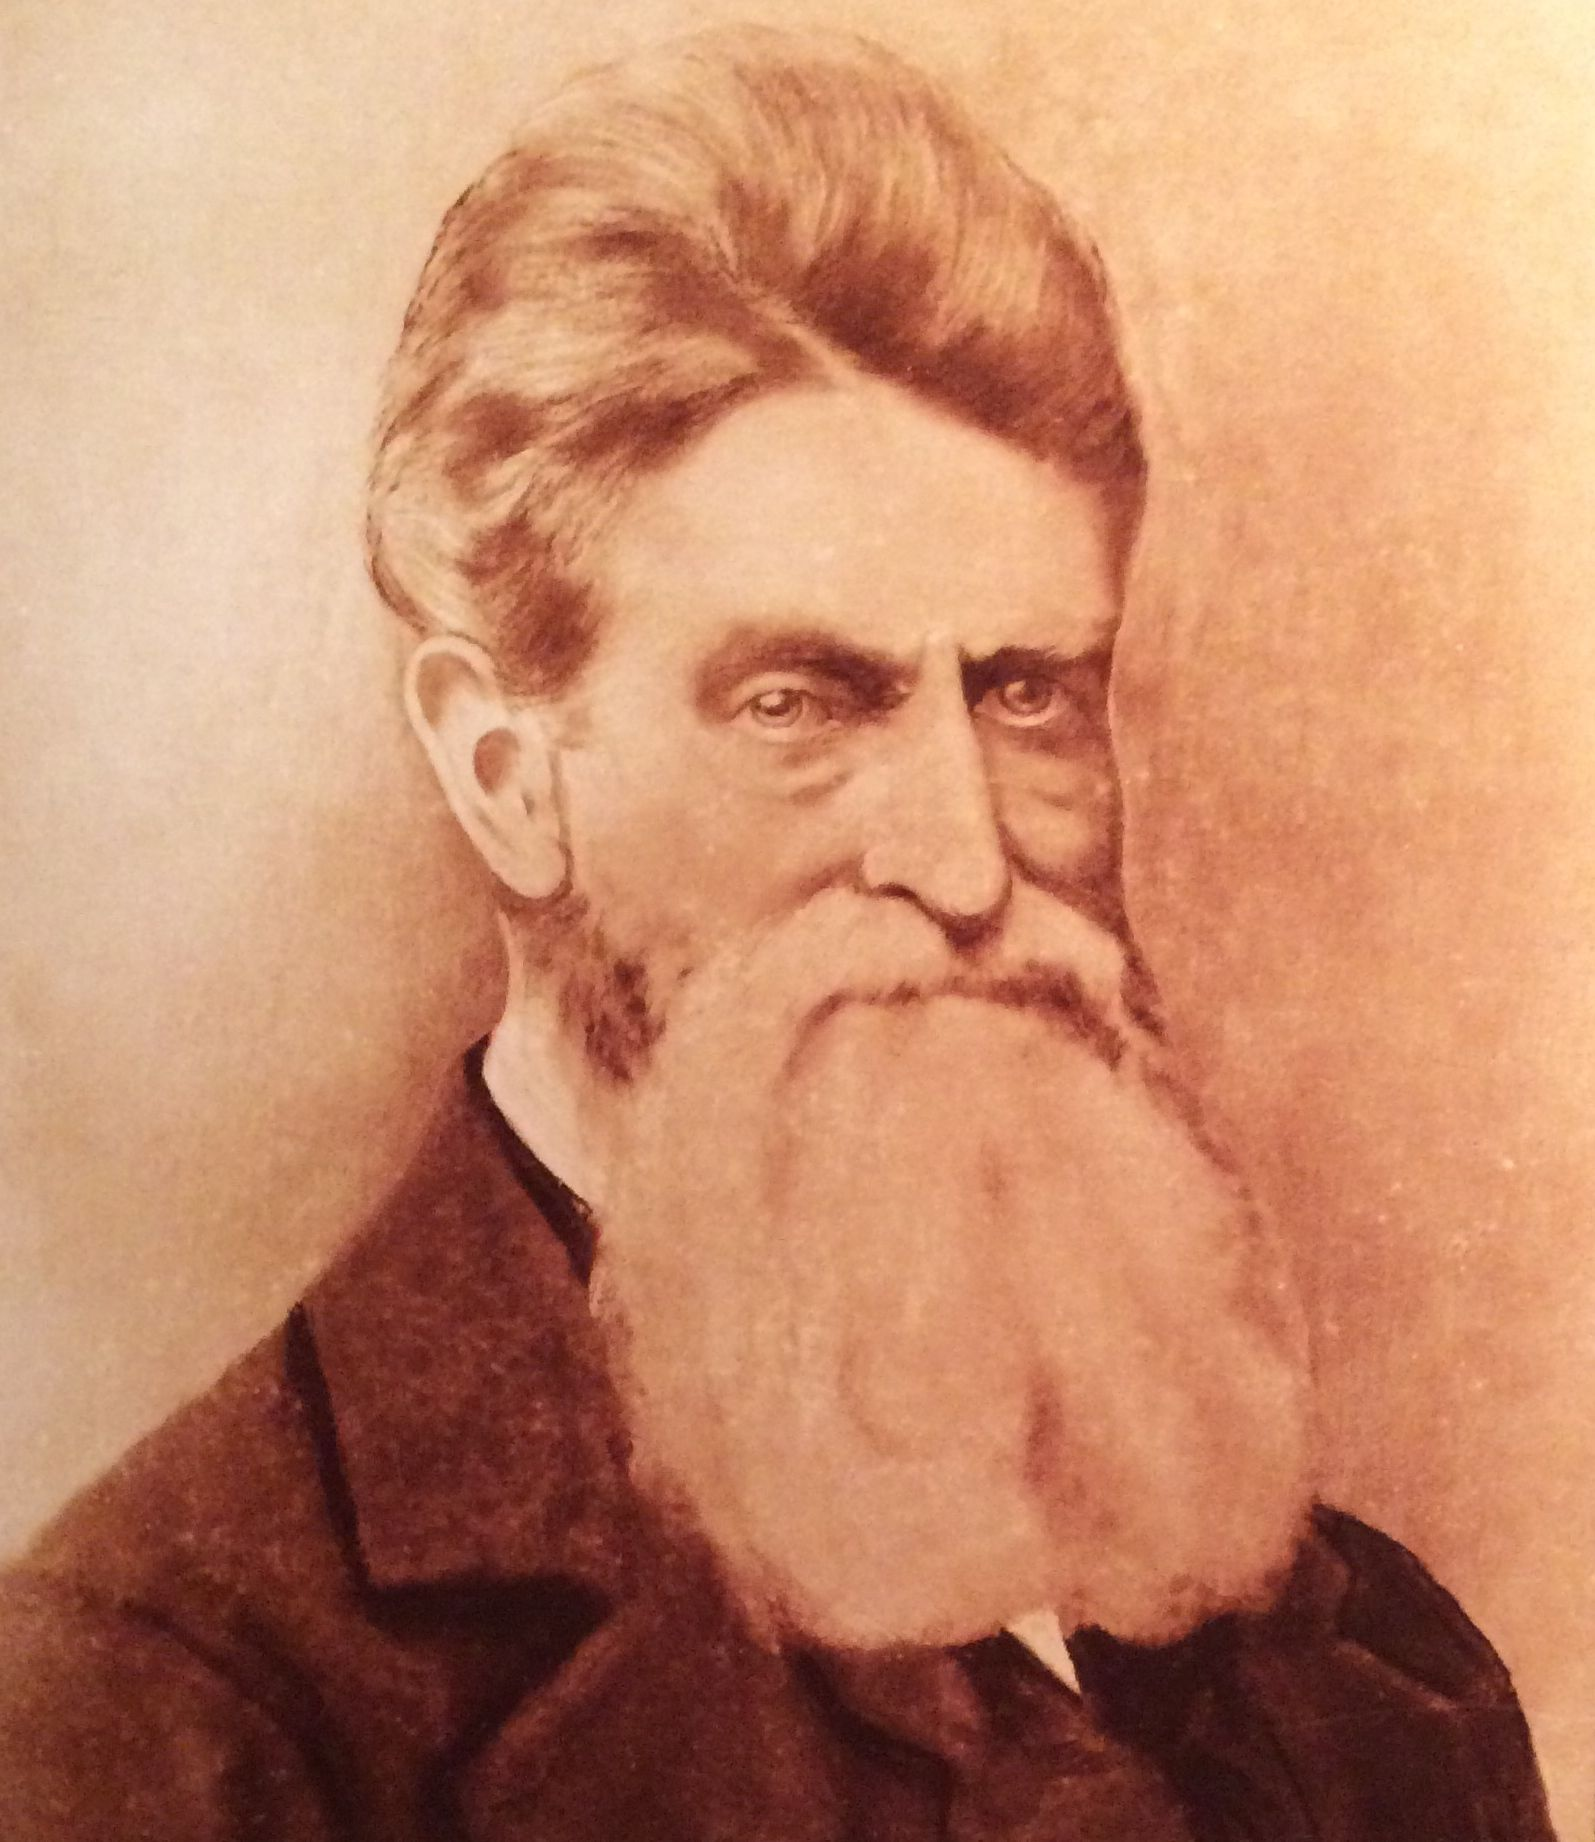 John Brown portrait from Marine Corp museum